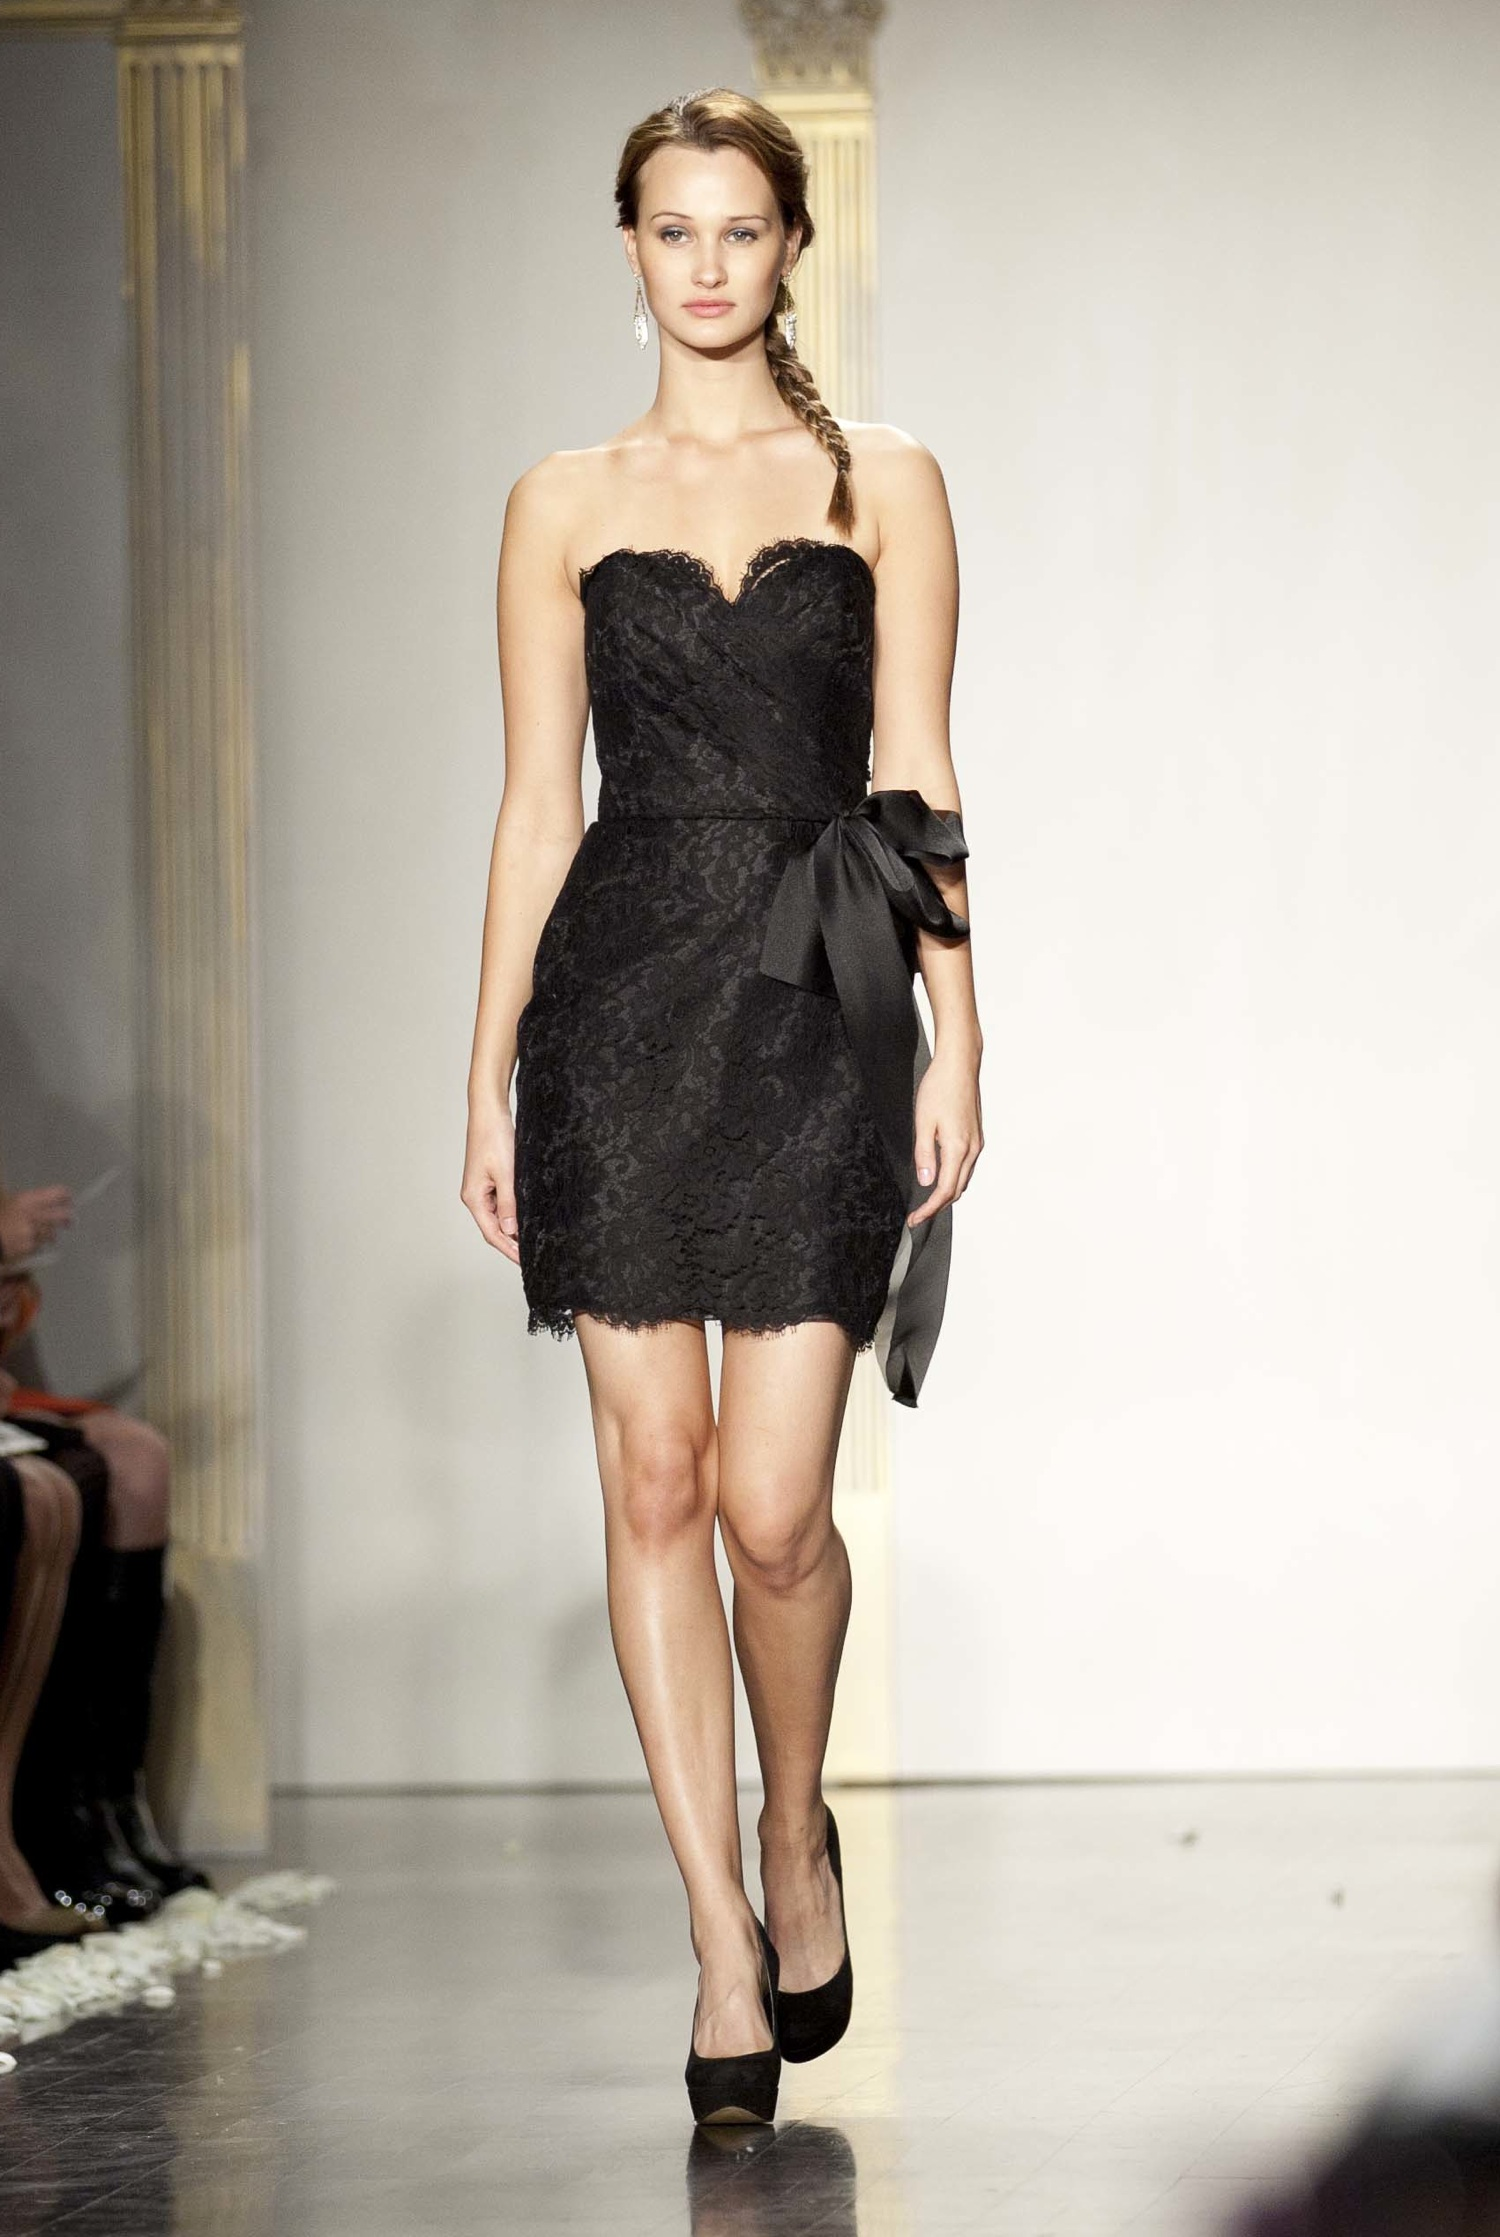 Bridesmaids-dresses-fall-2012-short-bridal-party-gowns-black-lace.original